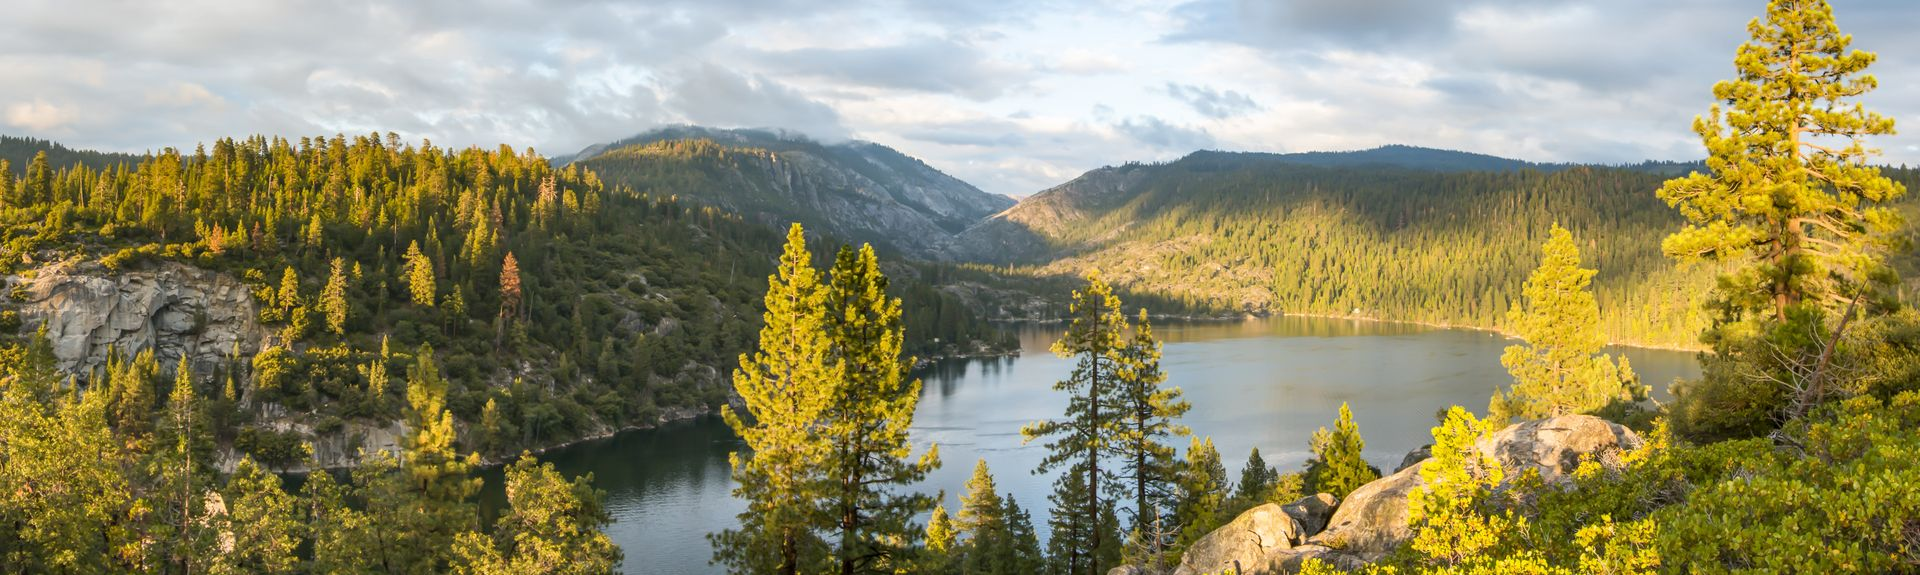 Pinecrest, California, United States of America